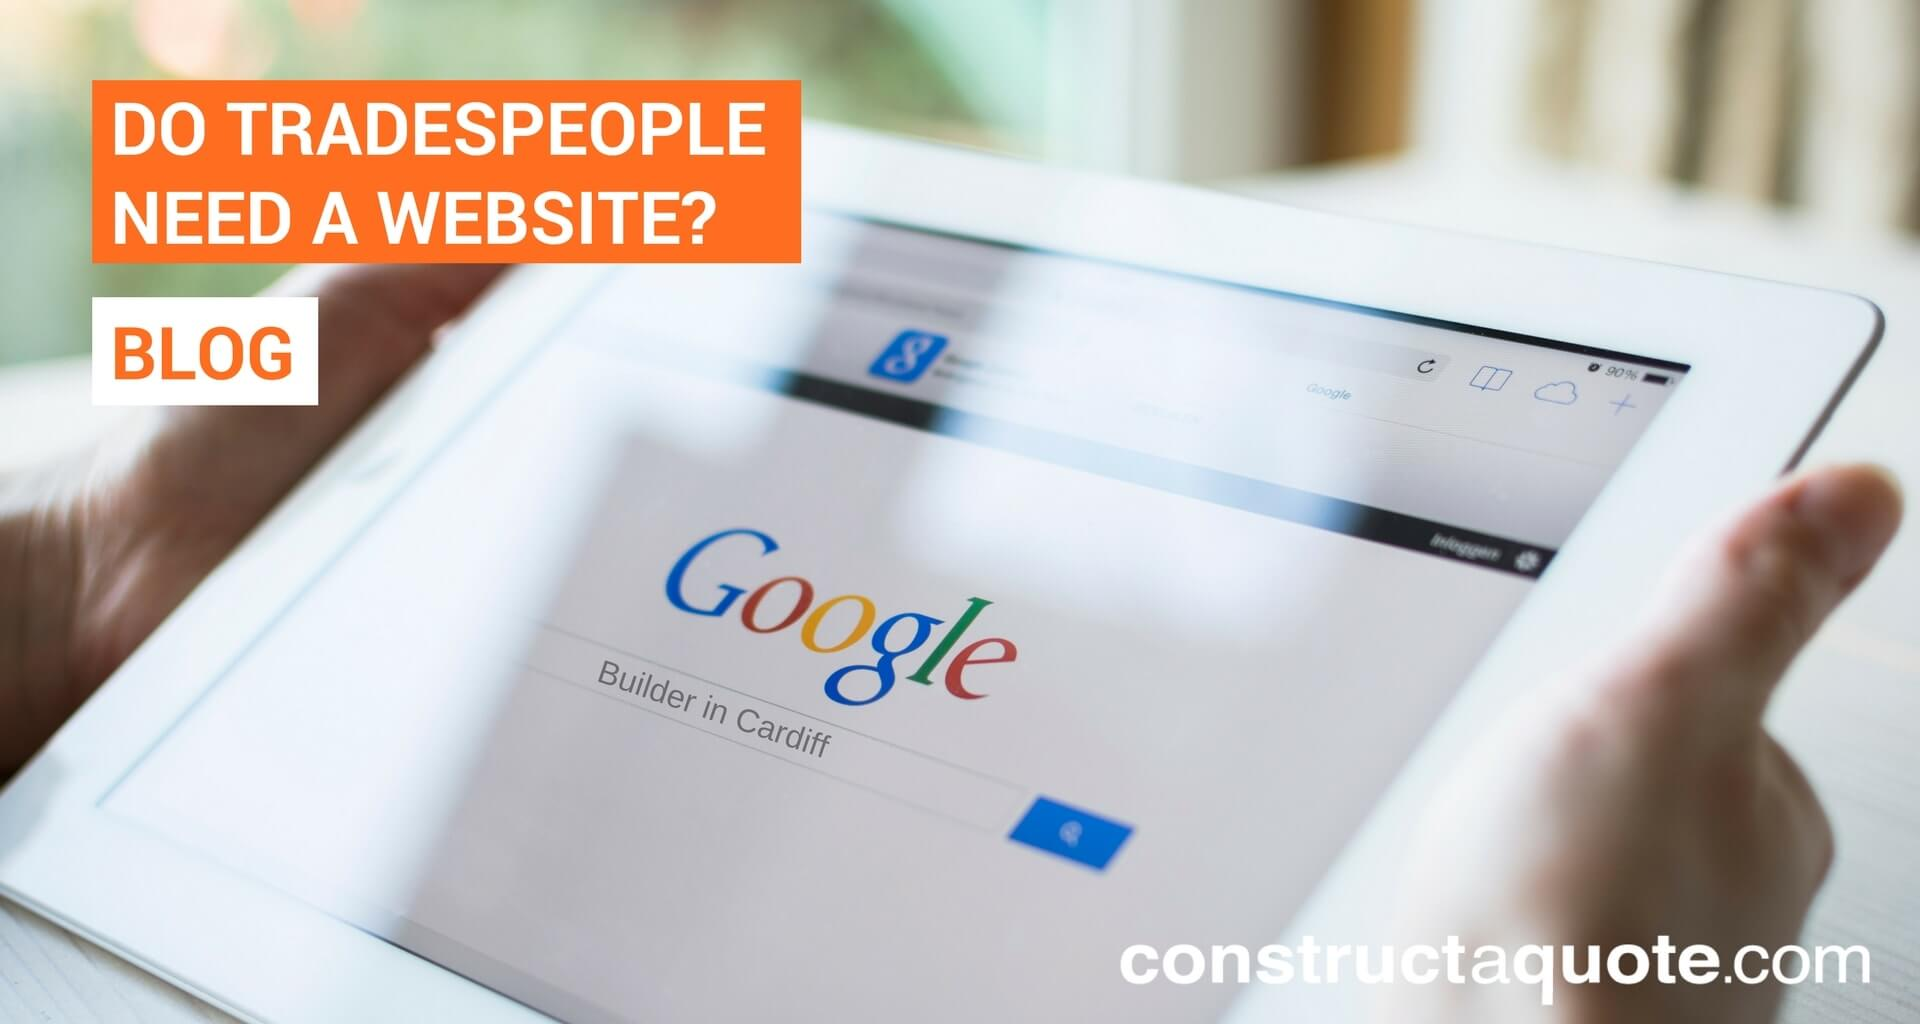 Do tradespeople need a website?